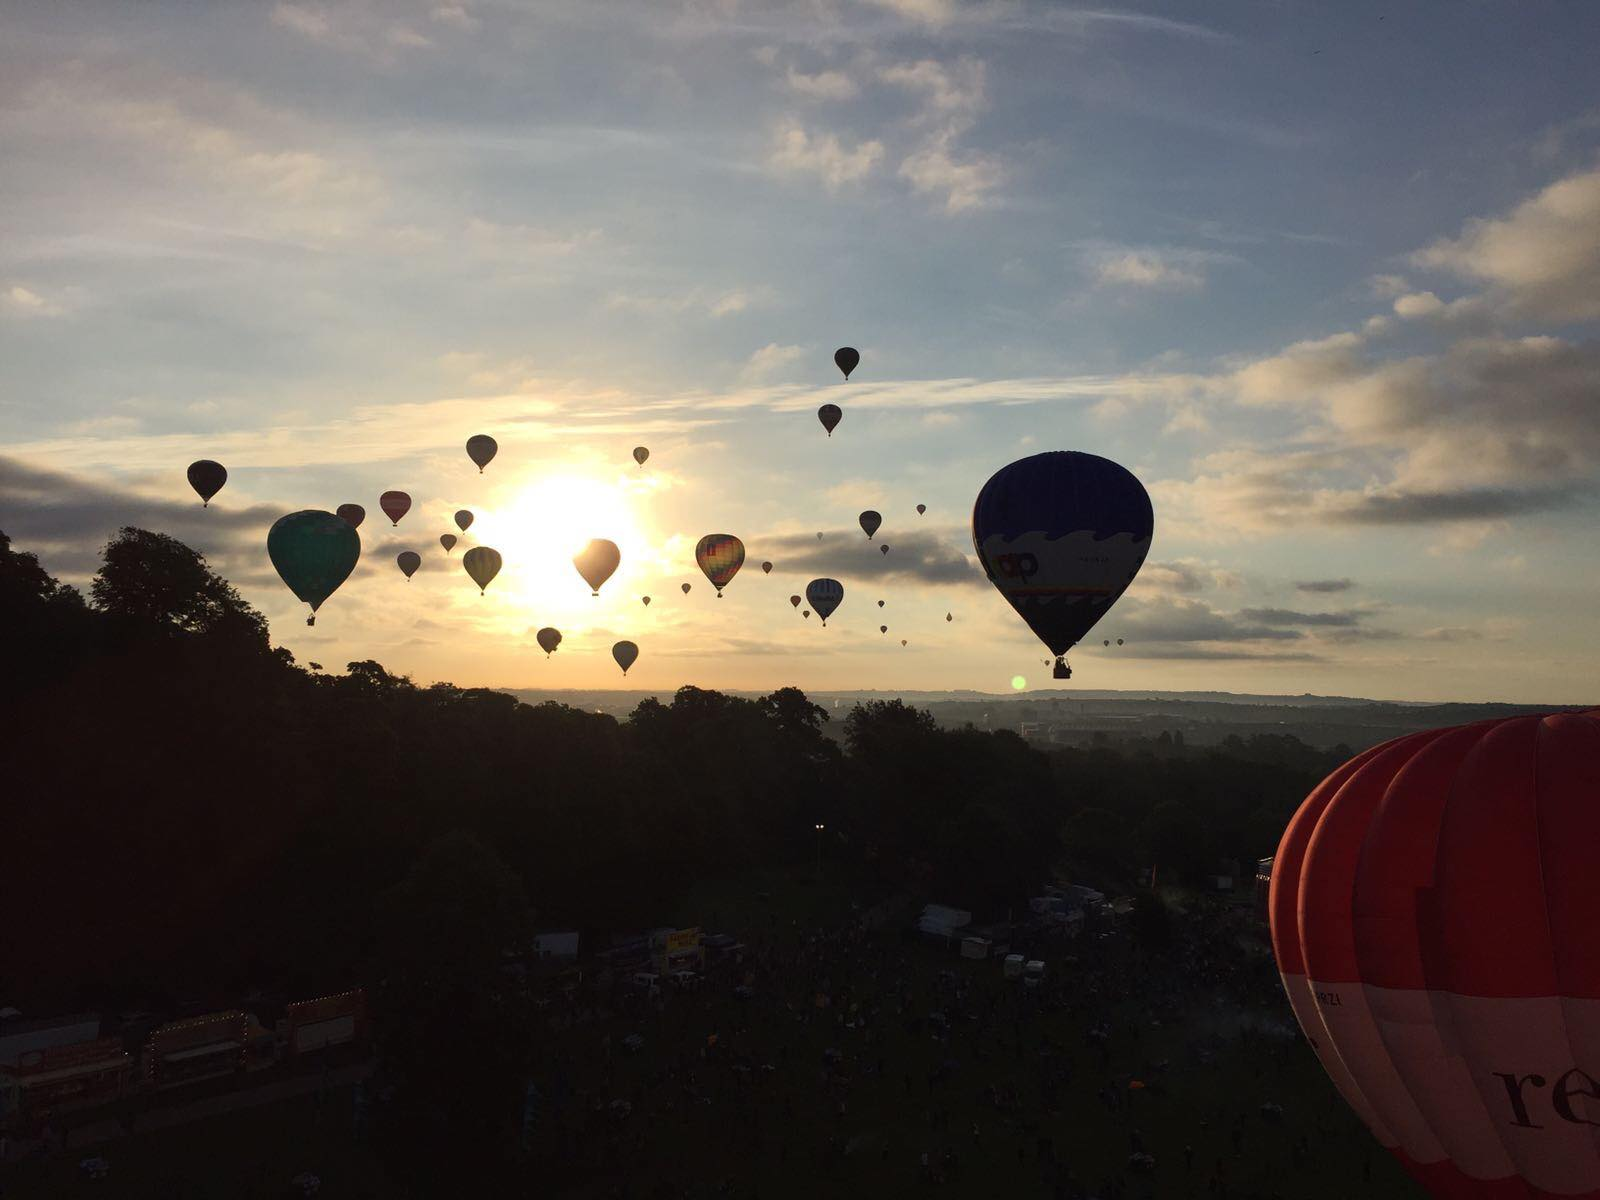 Ballons in the morning